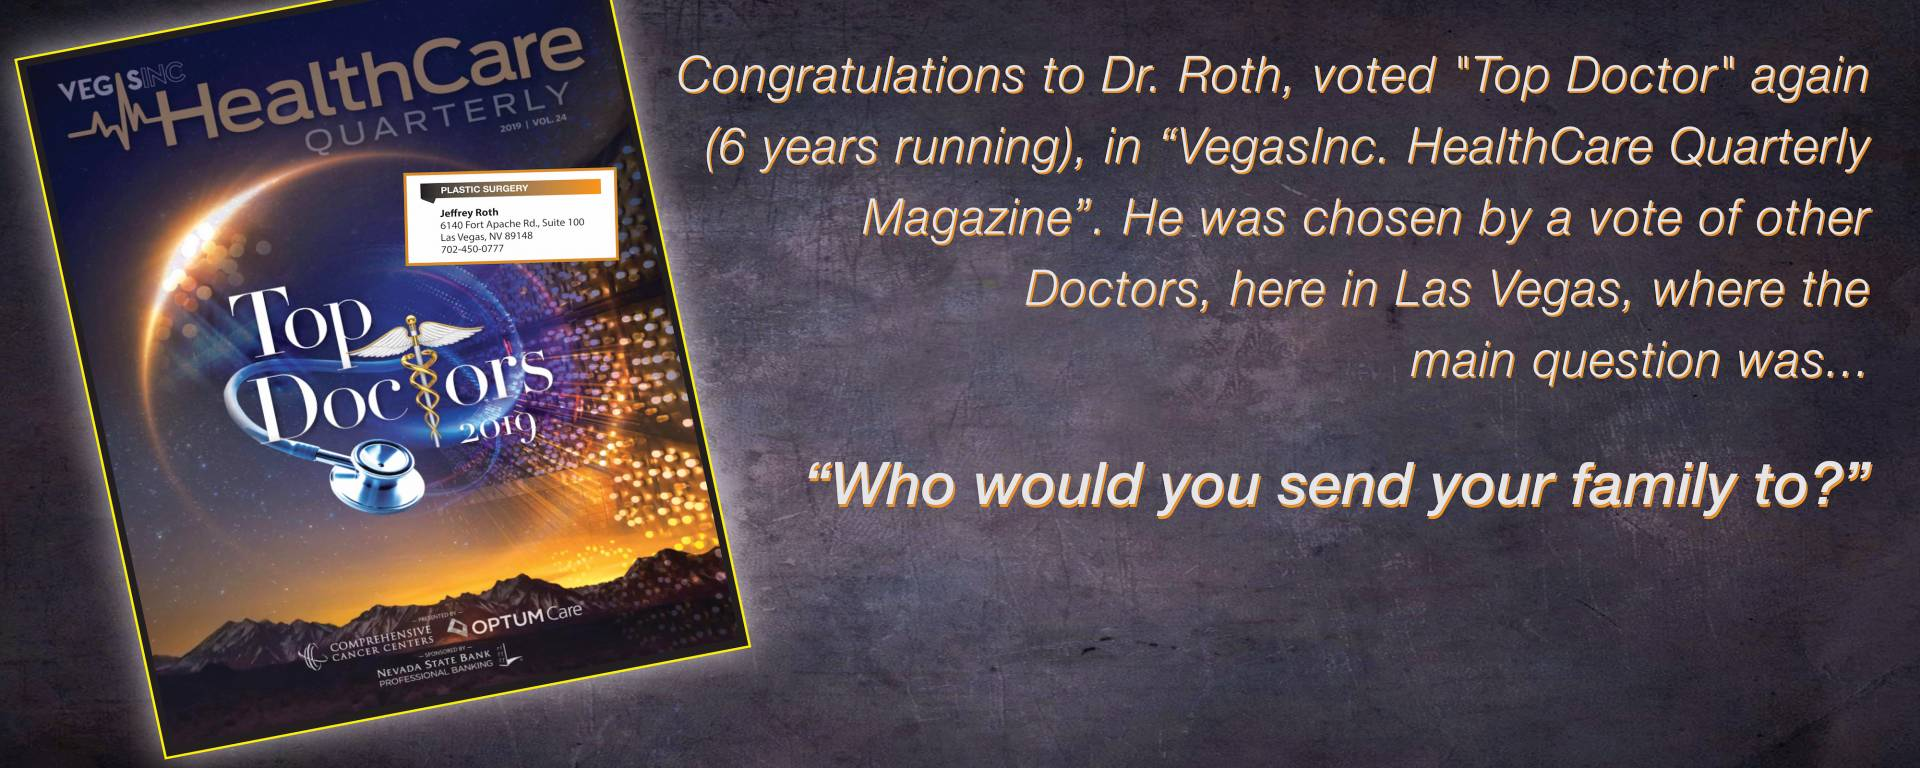 Dr. Roth again voted a 2019 Top Doc!